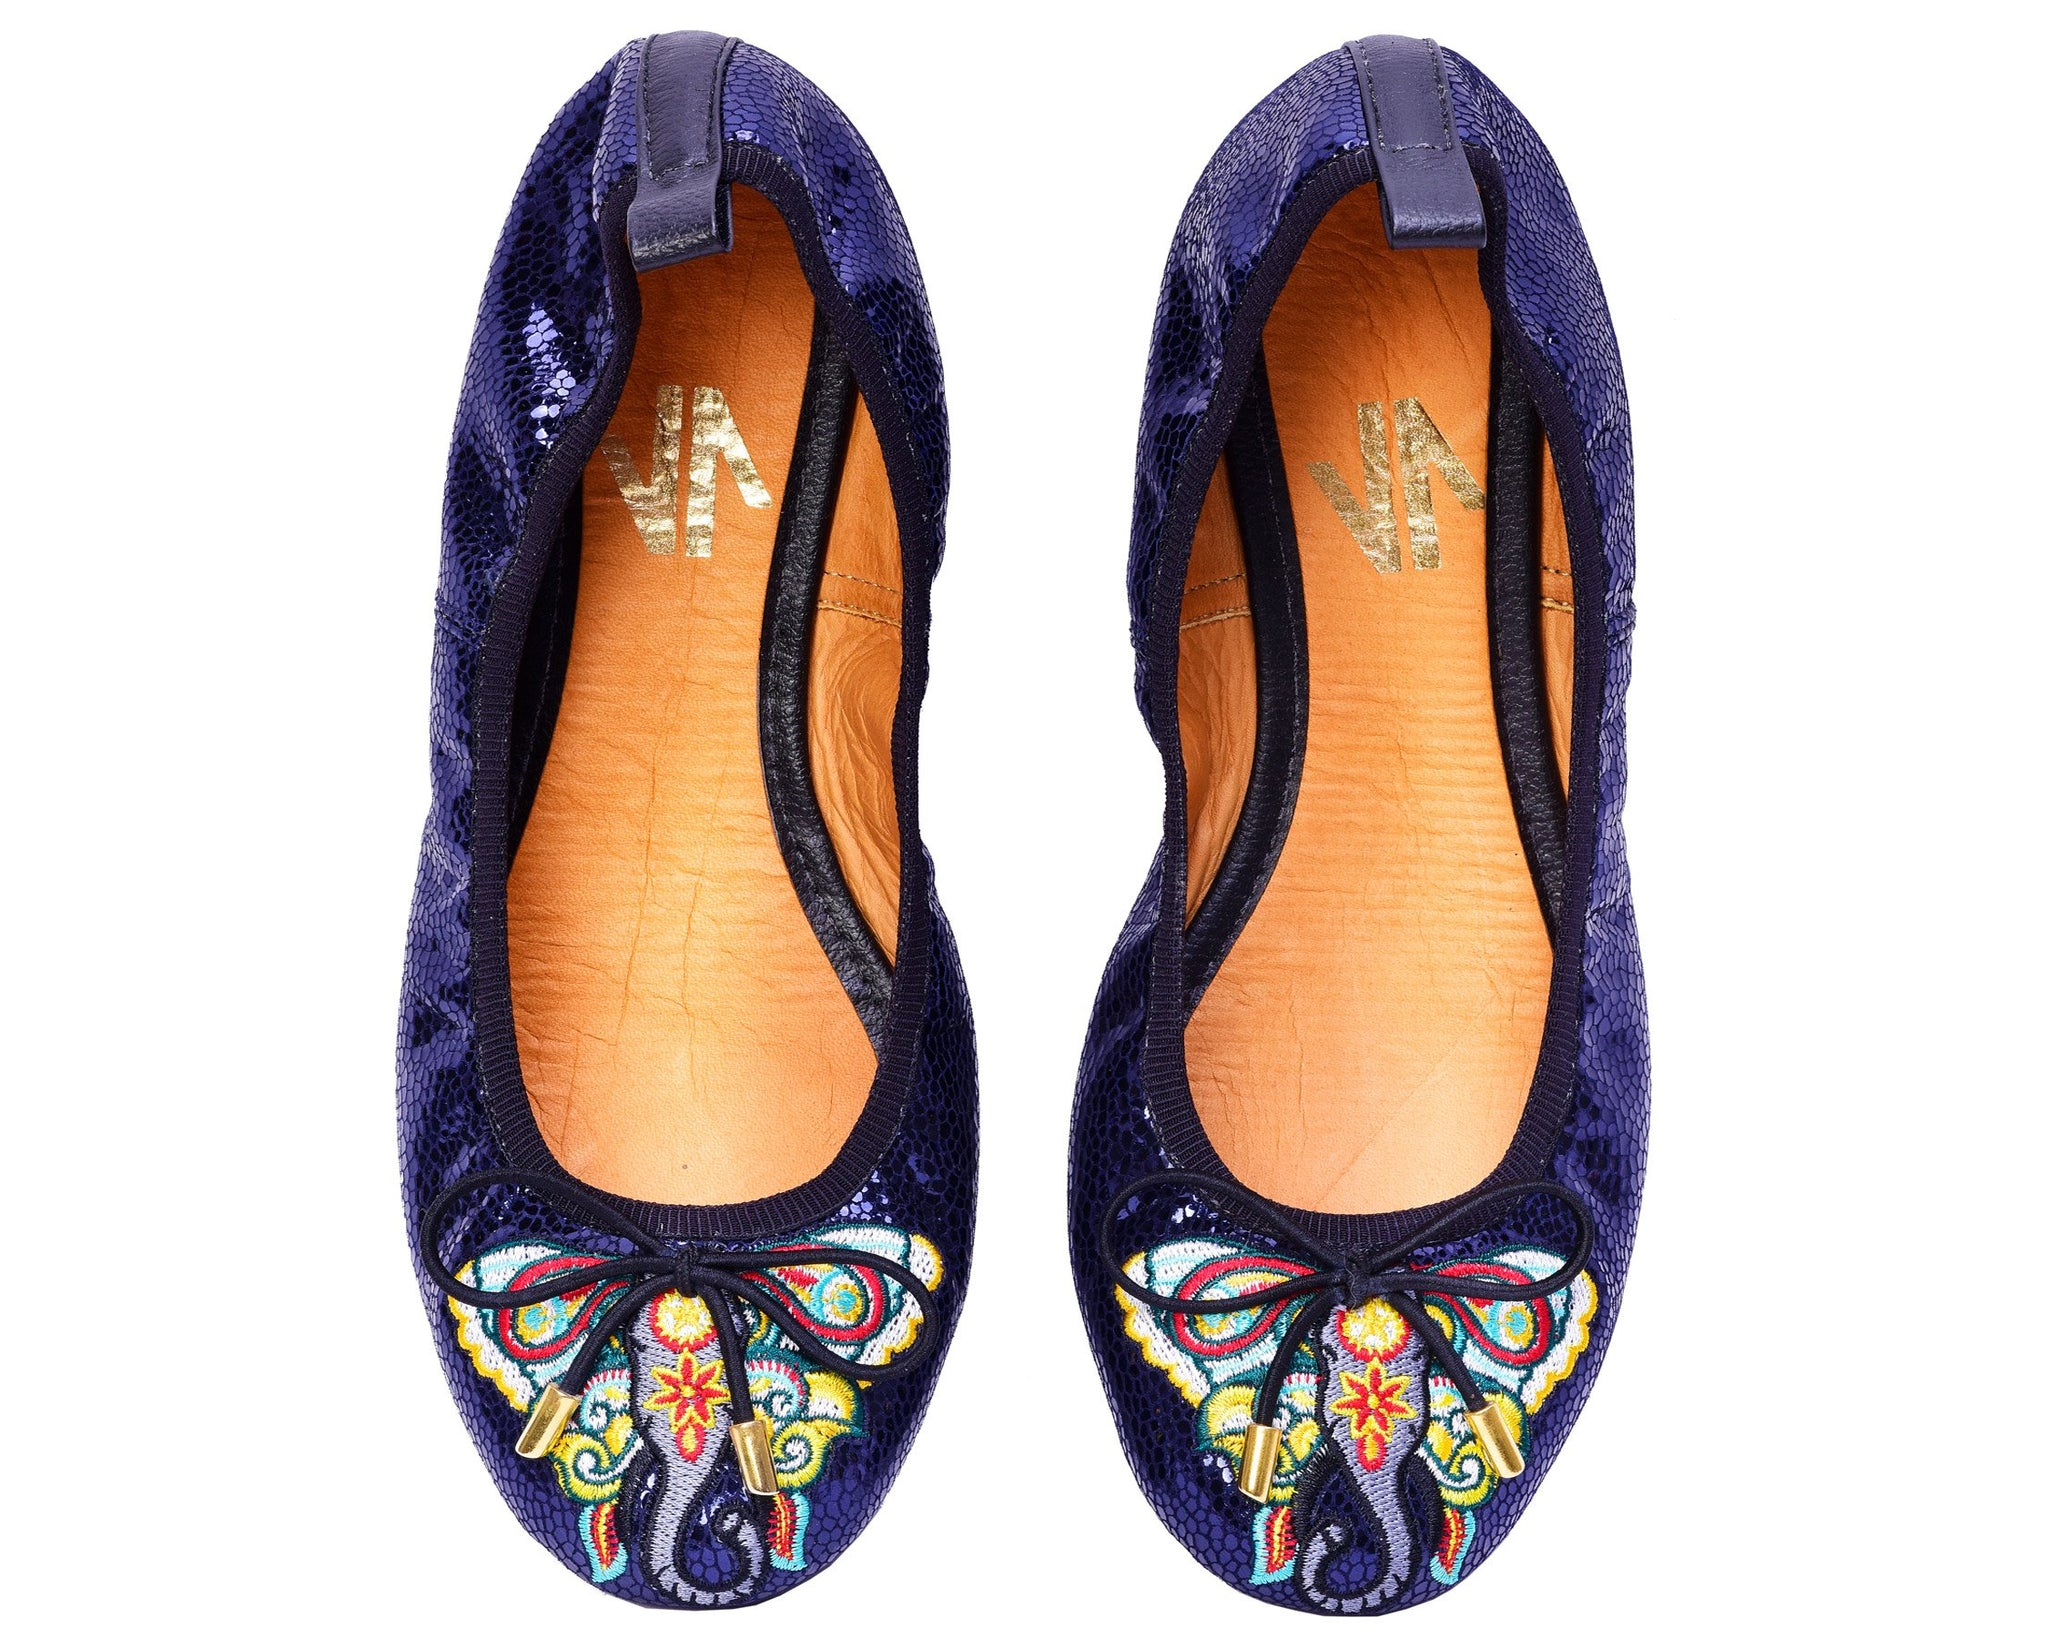 Silvia Cobos LUXURY Embroidered Leather Ballerinas